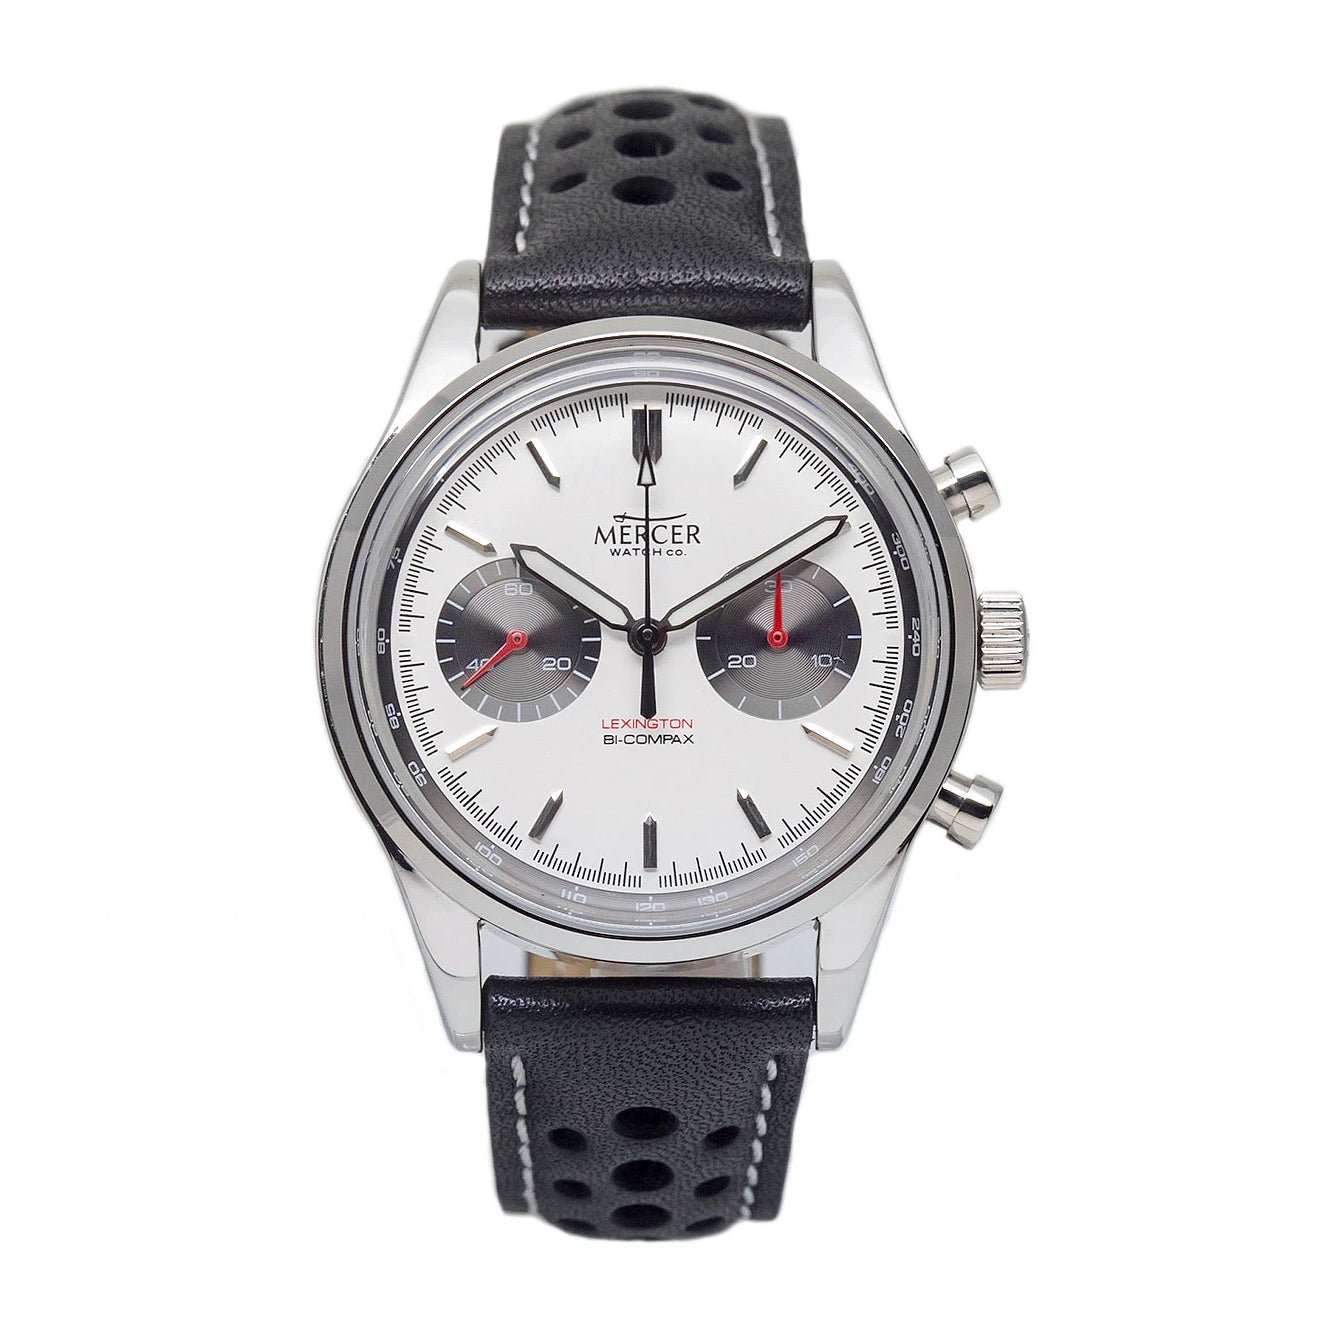 Lexington chronograph - white/ash